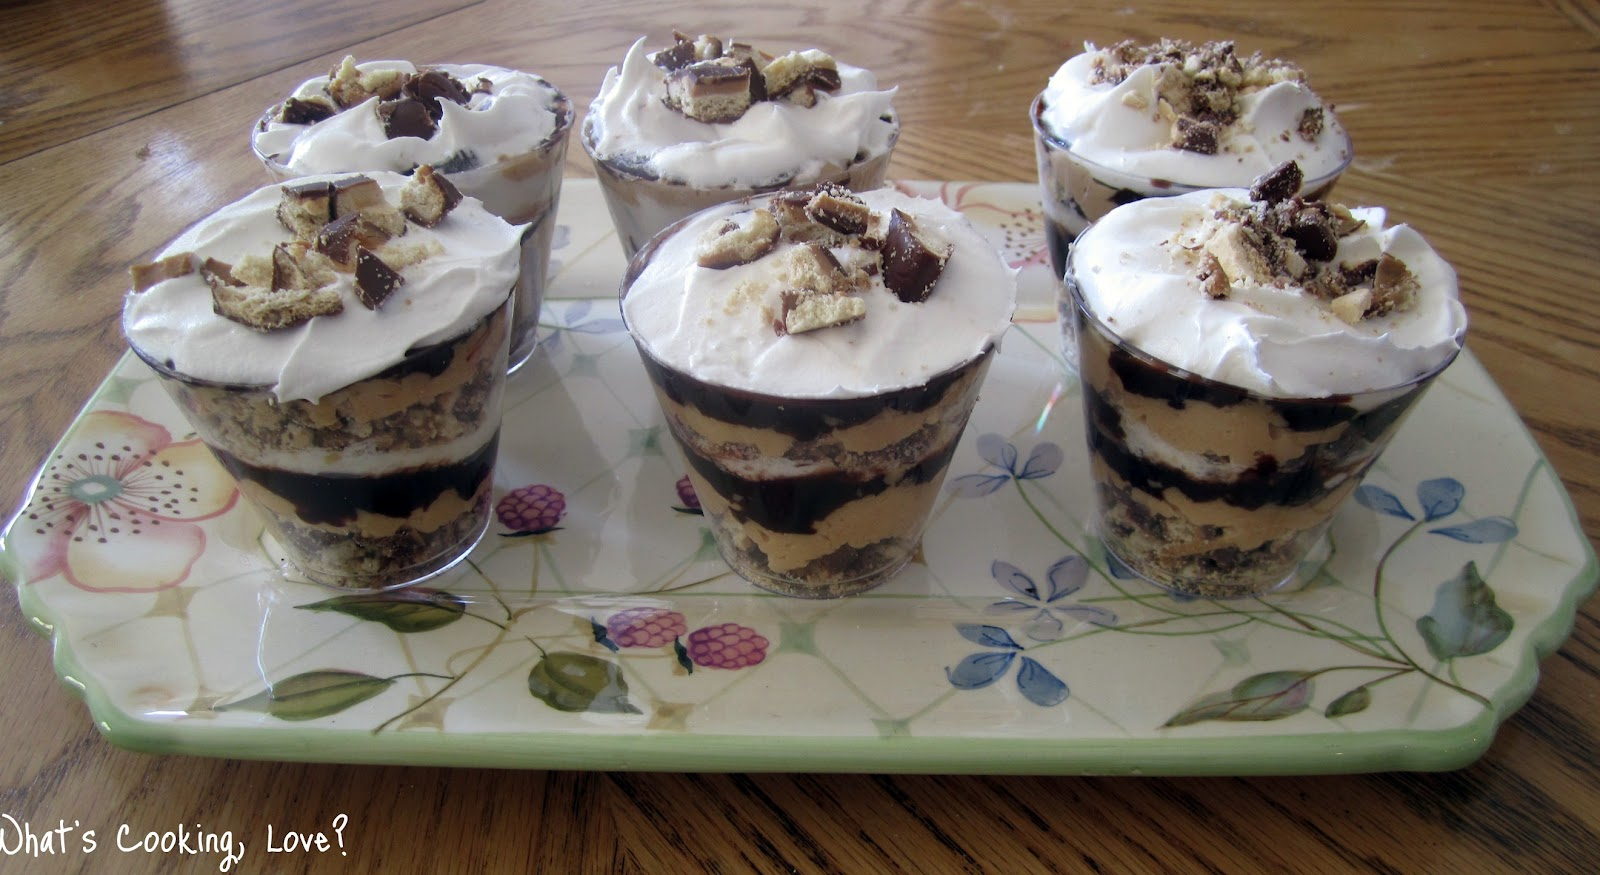 Tagalong Peanut Butter Trifle - Whats Cooking Love?